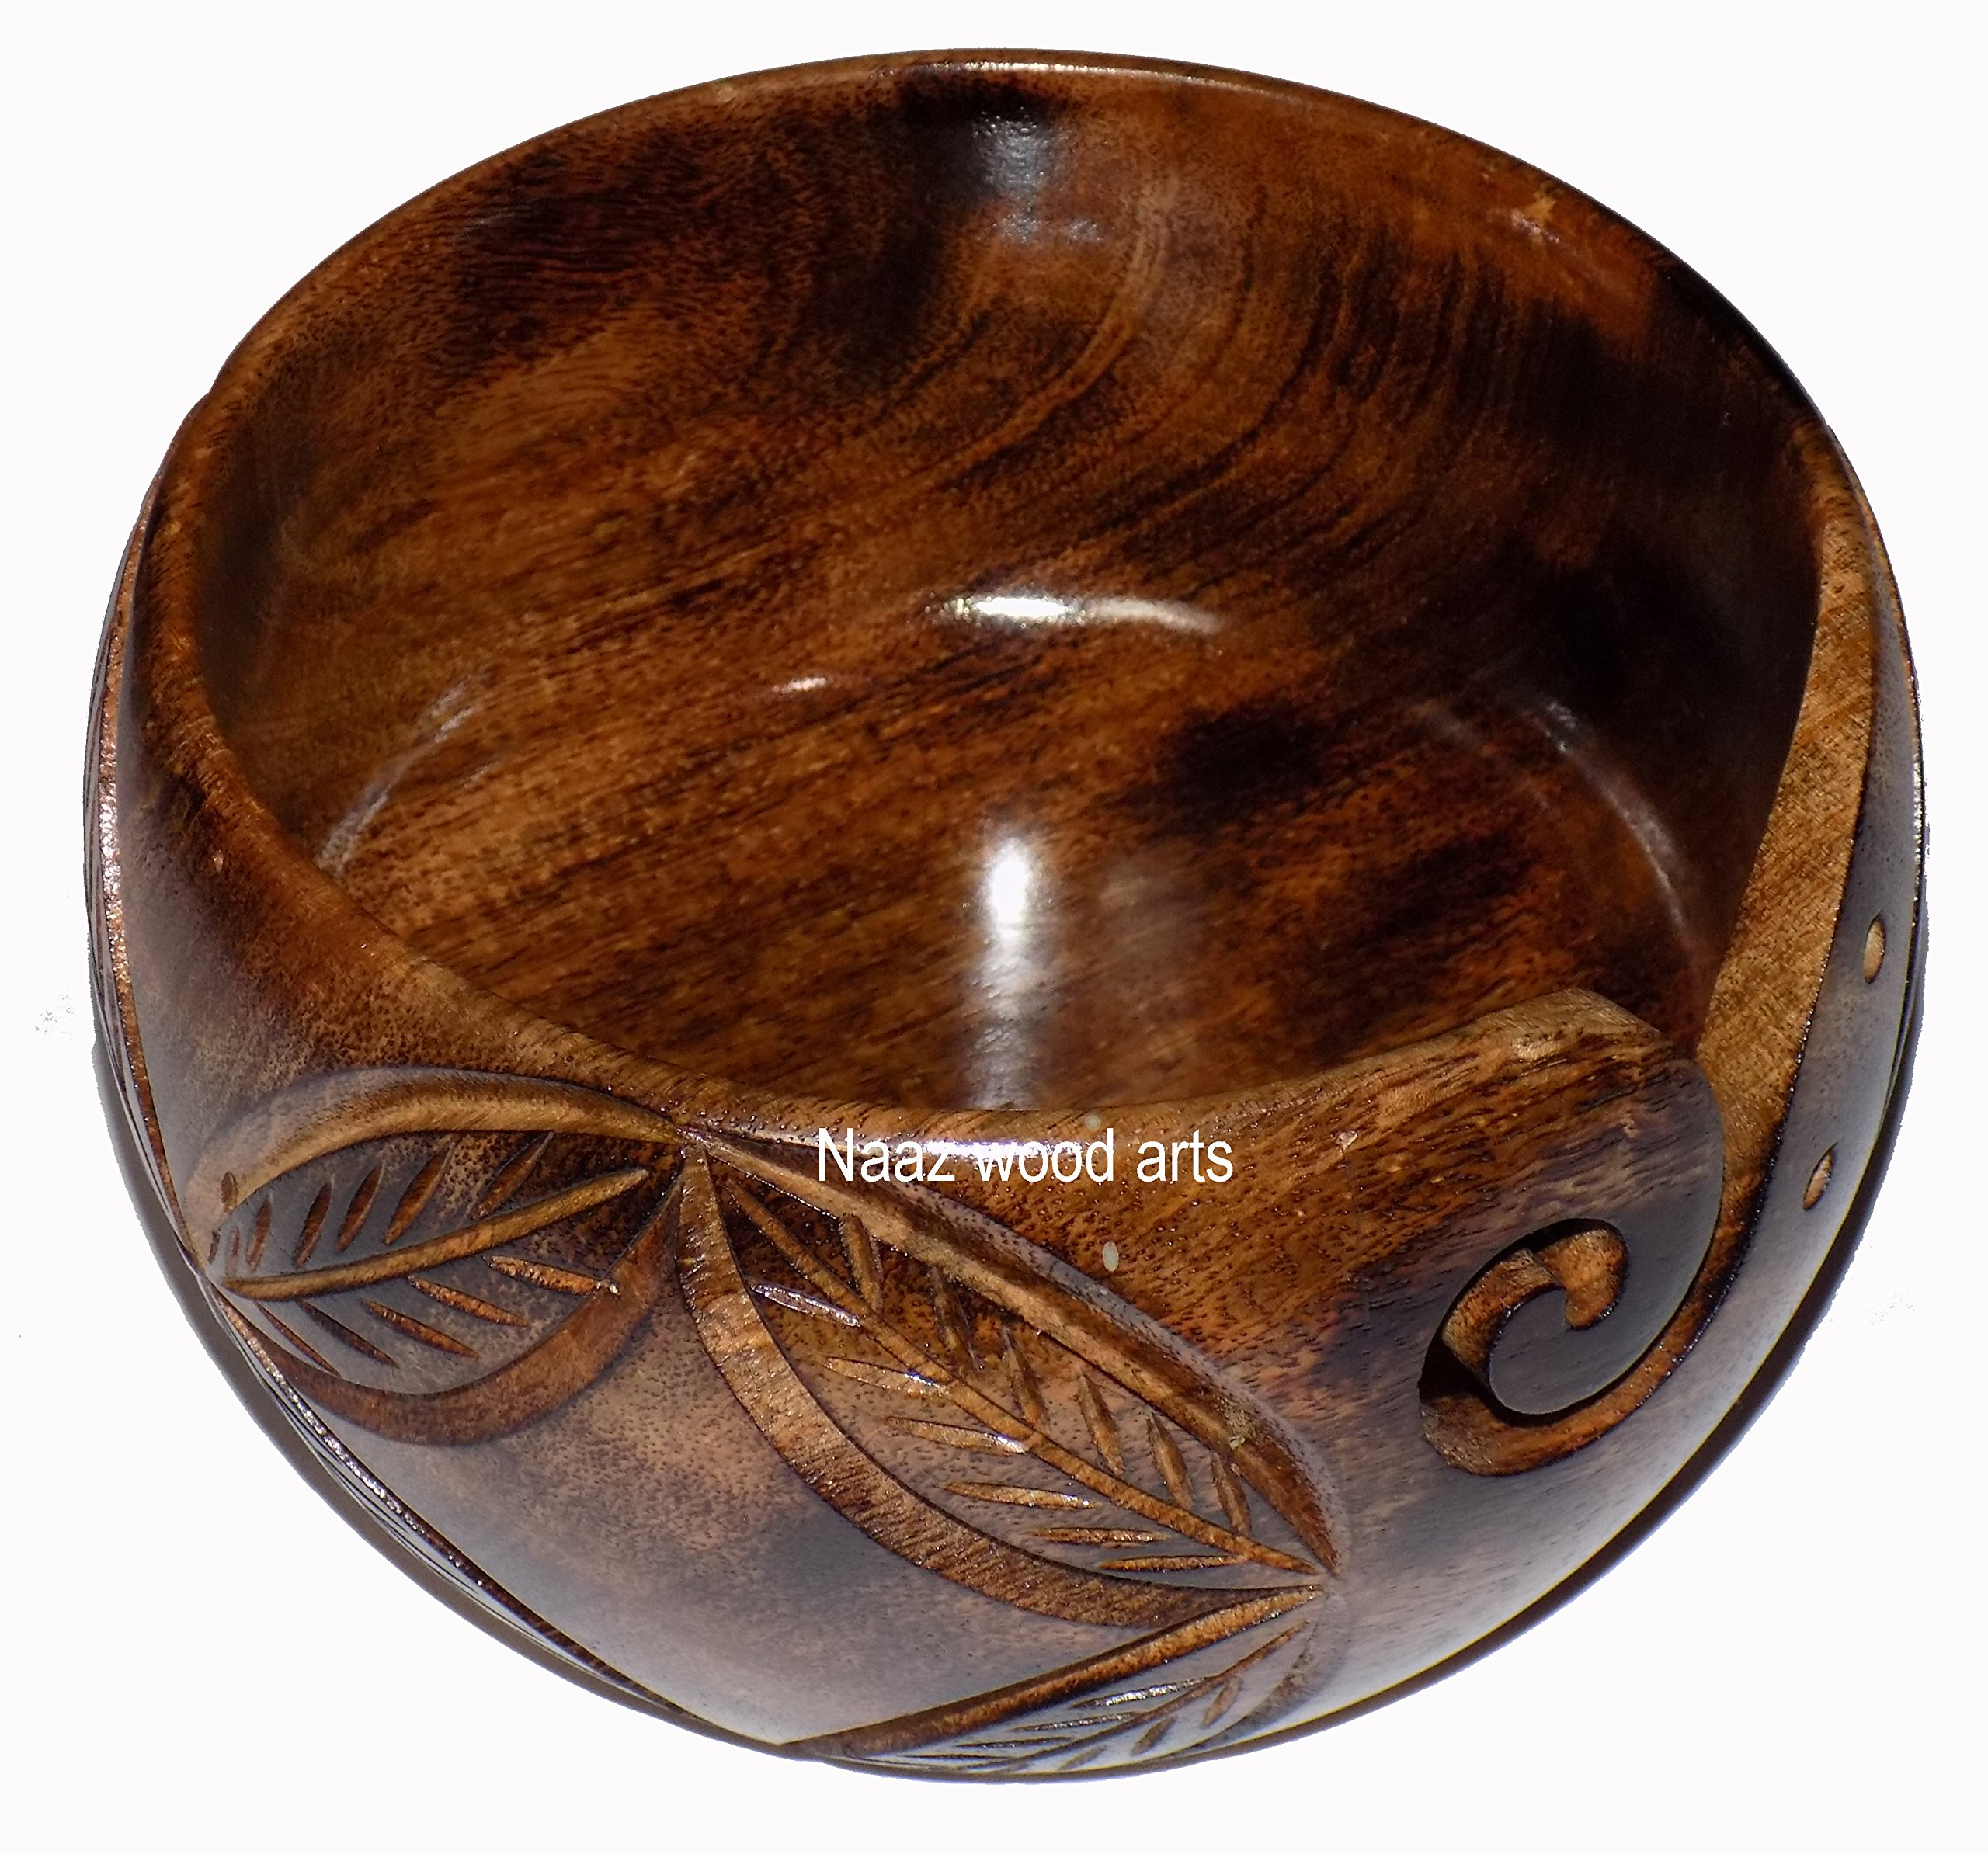 Naaz Wood Arts Yarn Bowl-7''x4'' Mango Wood -Wooden with Handmade from Sheesham Wood- Heavy & Sturdy to Prevent Slipping. Perfect Yarn Holder for Knitting & Crocheting Burn antiqe with Hand Carved